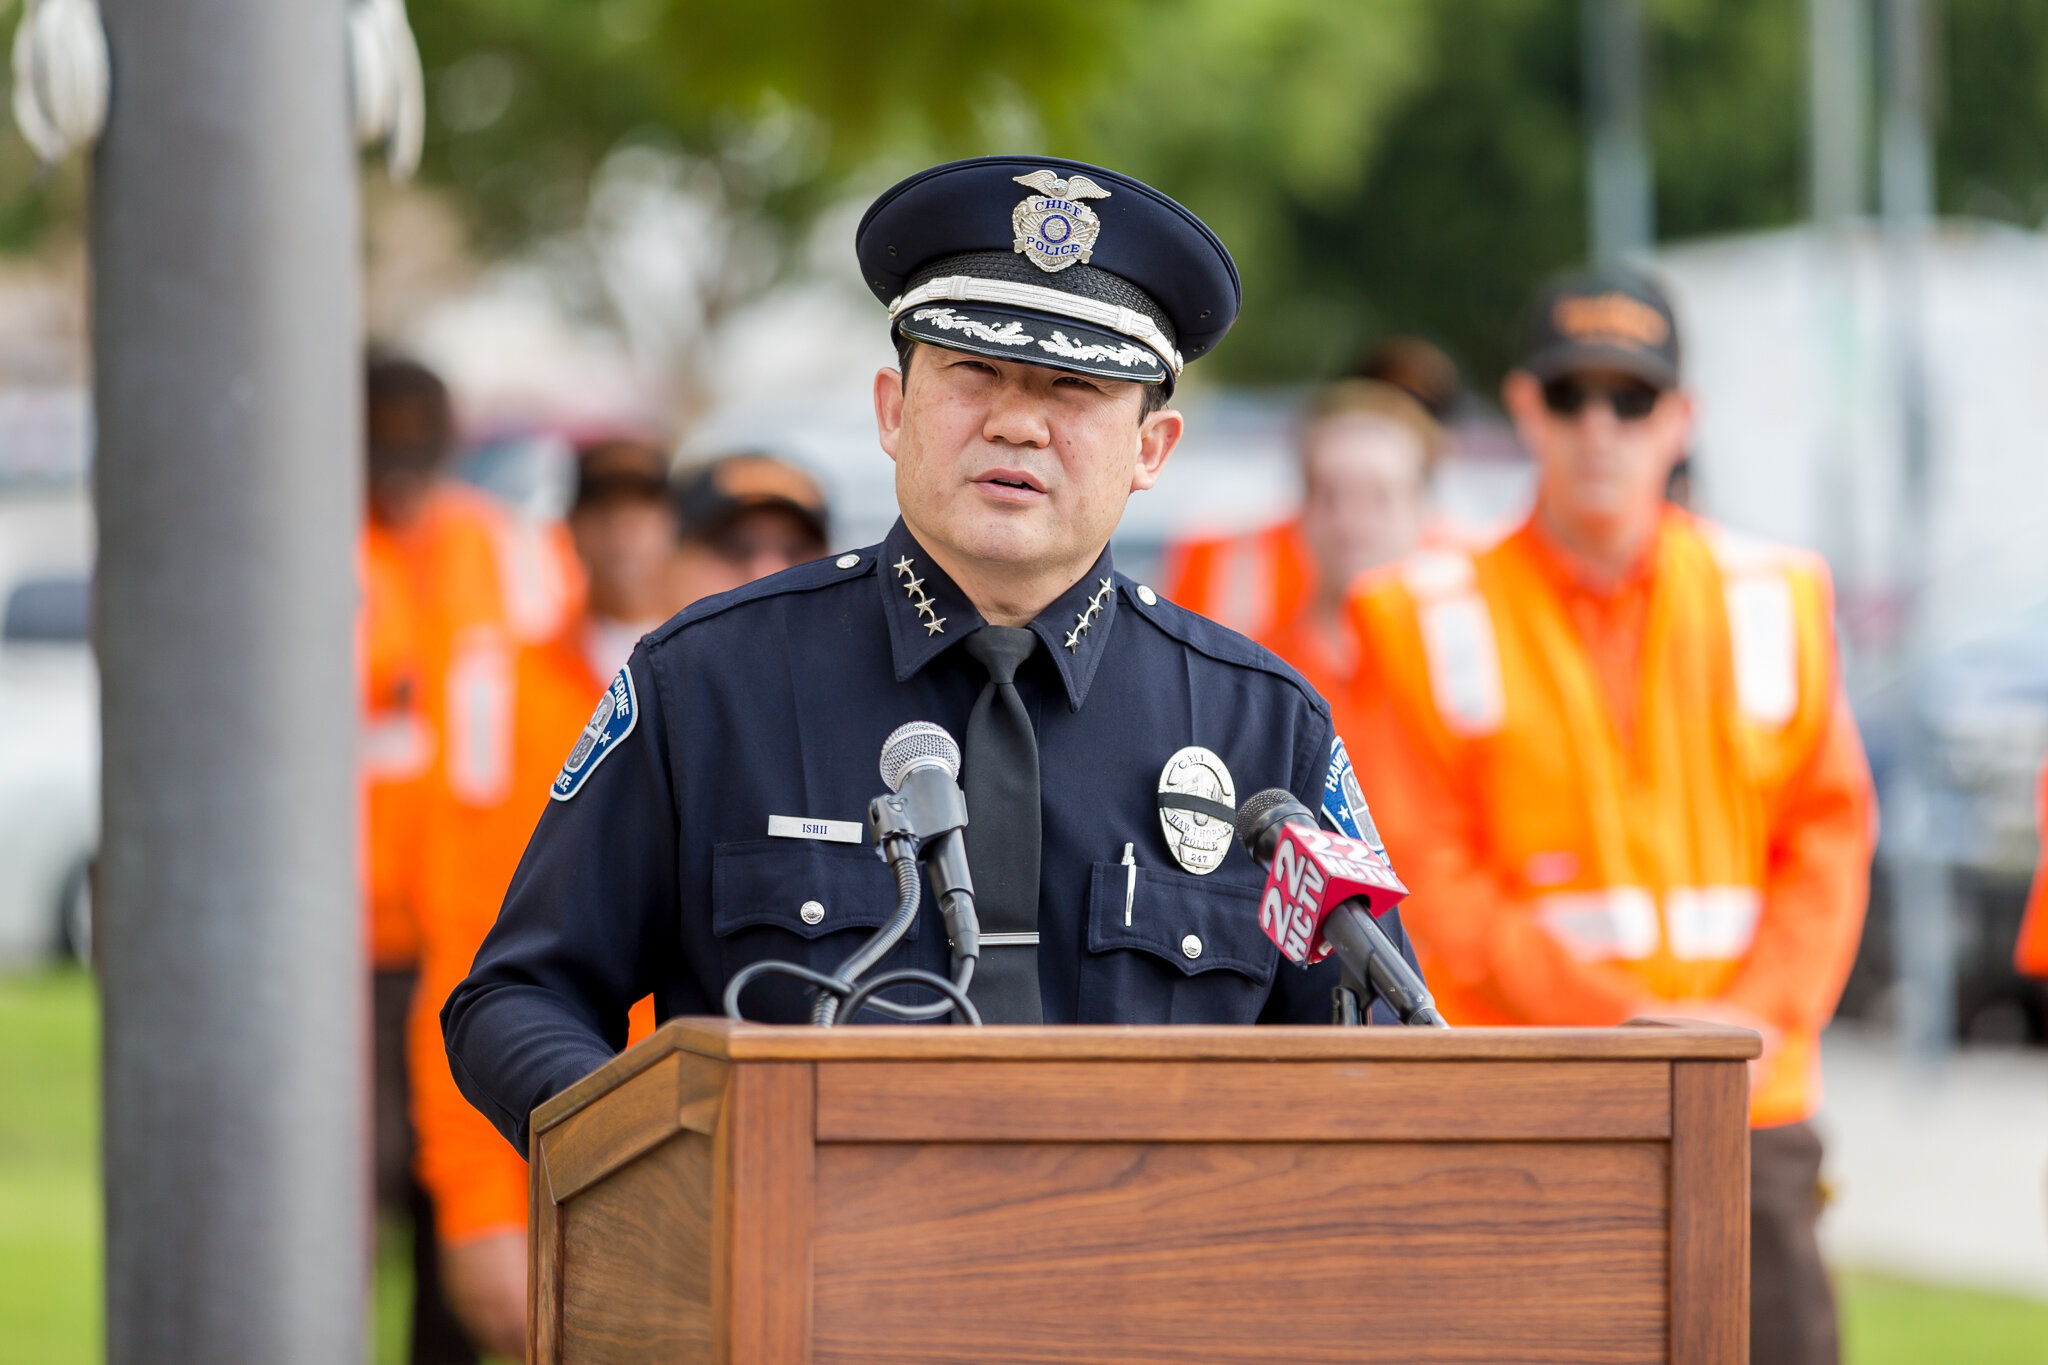 Police Chief Mike Ishii